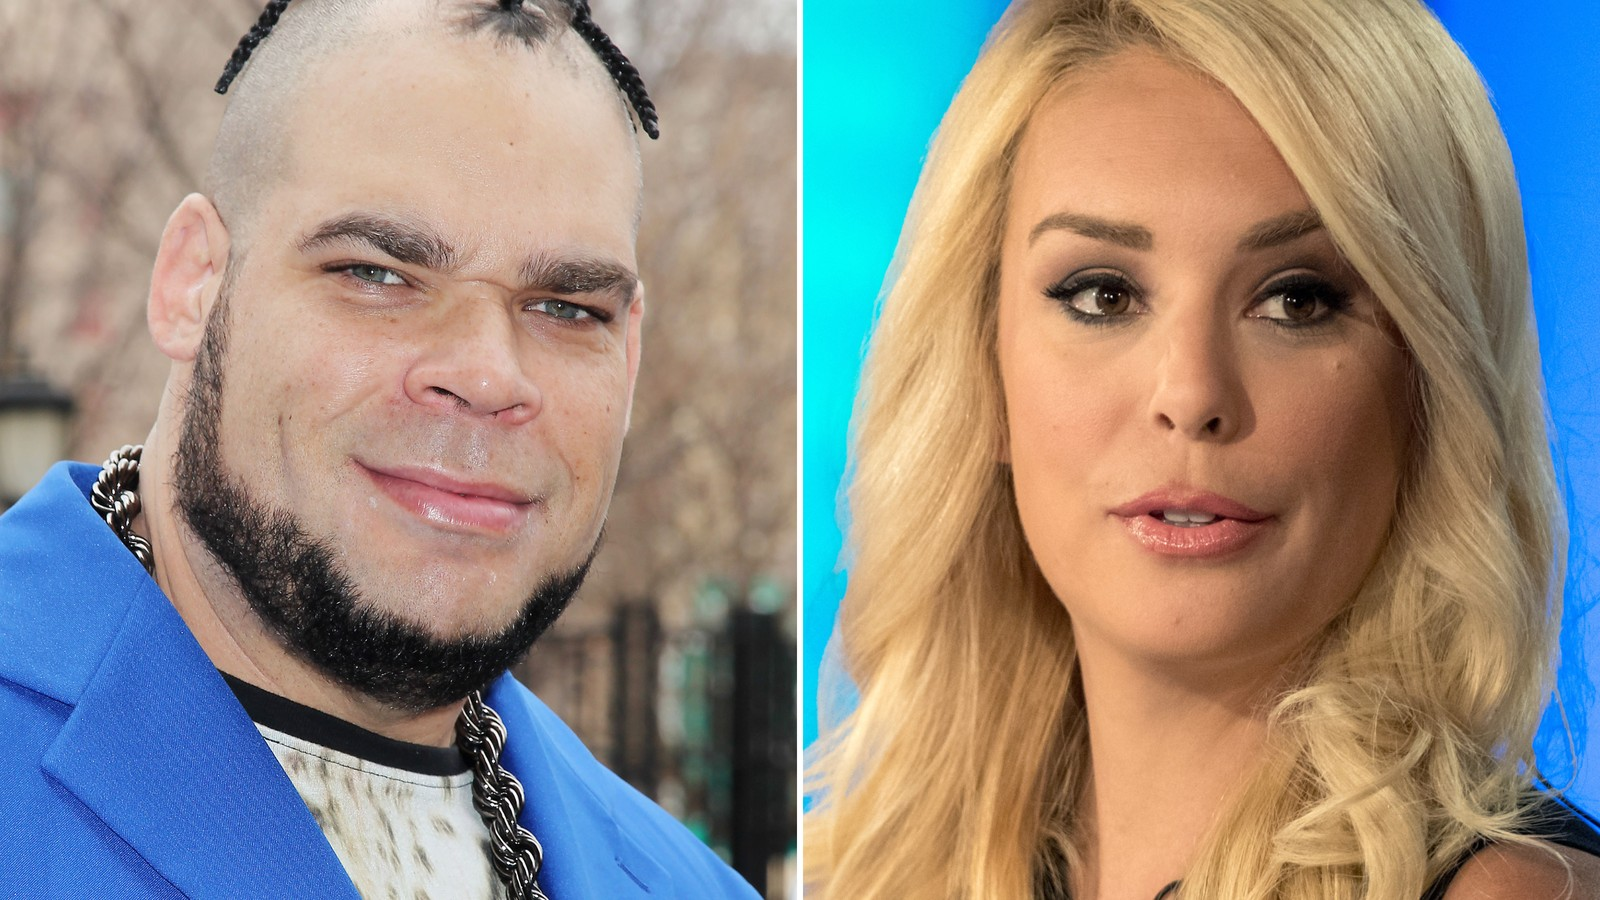 "Britt McHenry, a host on Fox News' streaming service, Fox Nation, filed a sexual harassment lawsuit on Tuesday against the network and one of its on-air personalities, George ""Tyrus"" Murdoch. (Credit: Starpix/Shutterstock/Getty Images via CNN Wire)"